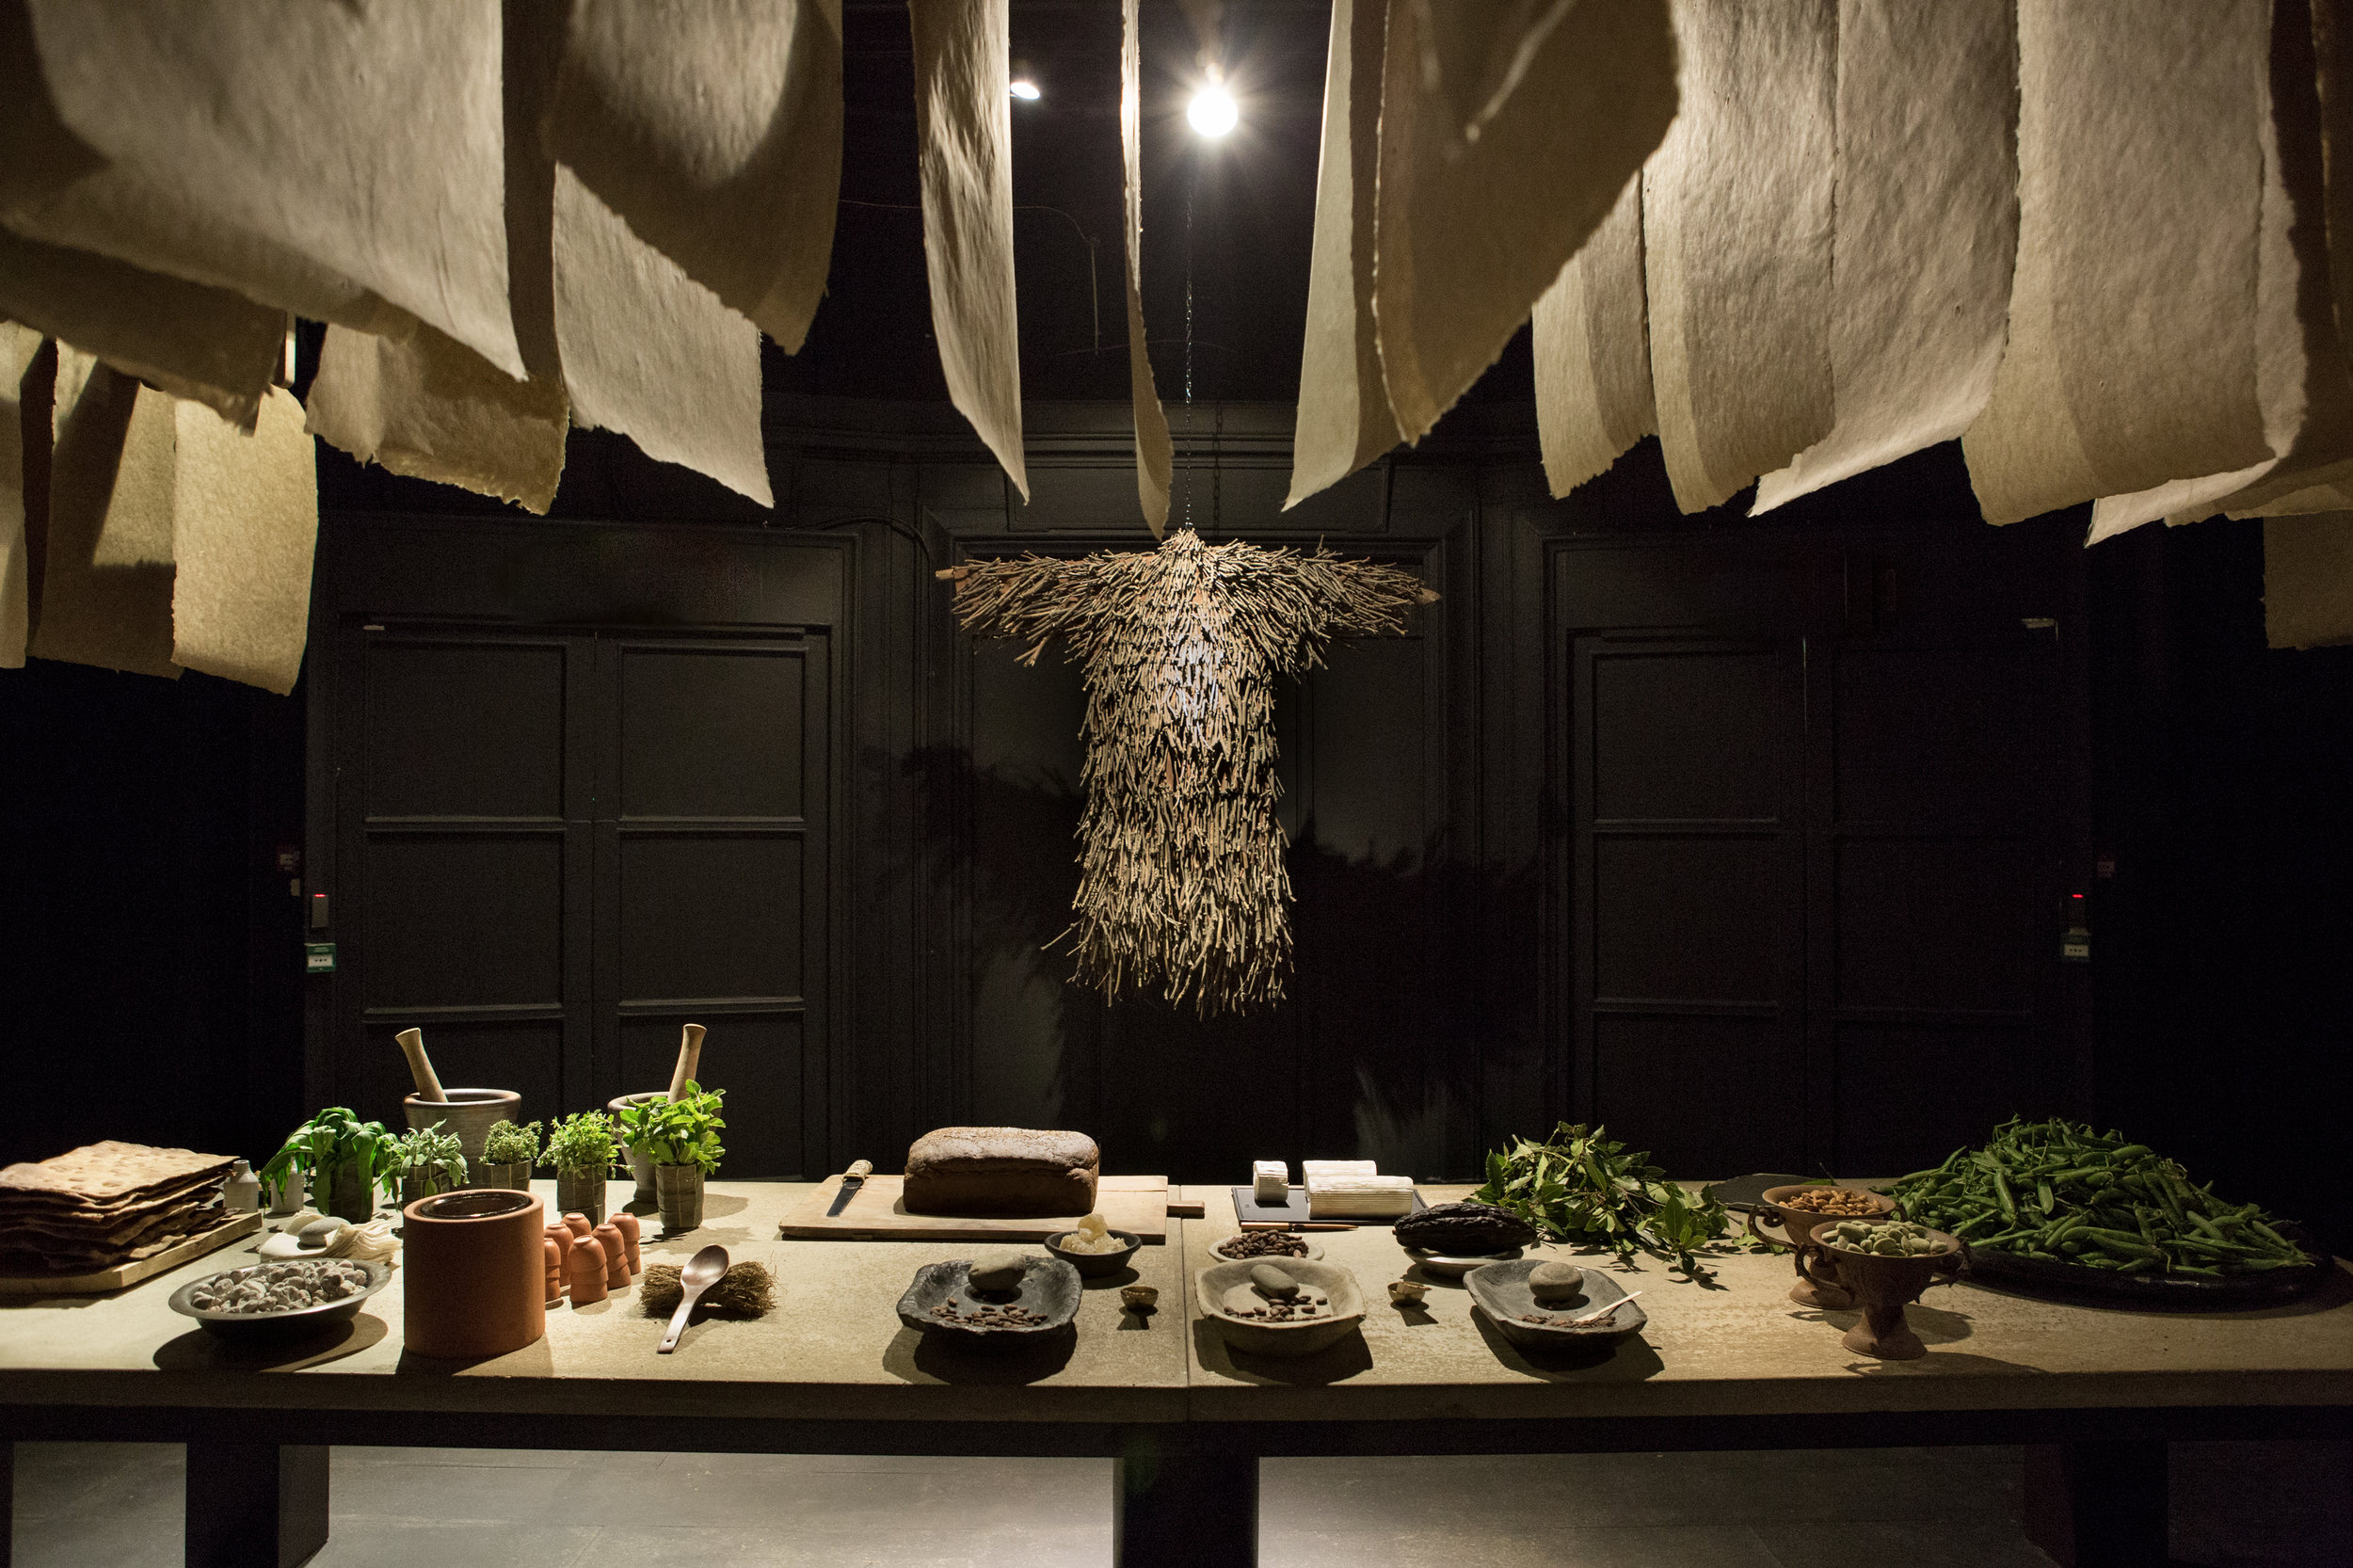 A Home for All, installation with The New Craftsmen & Selfridges (Photo by The New Craftsmen & Selfridges).